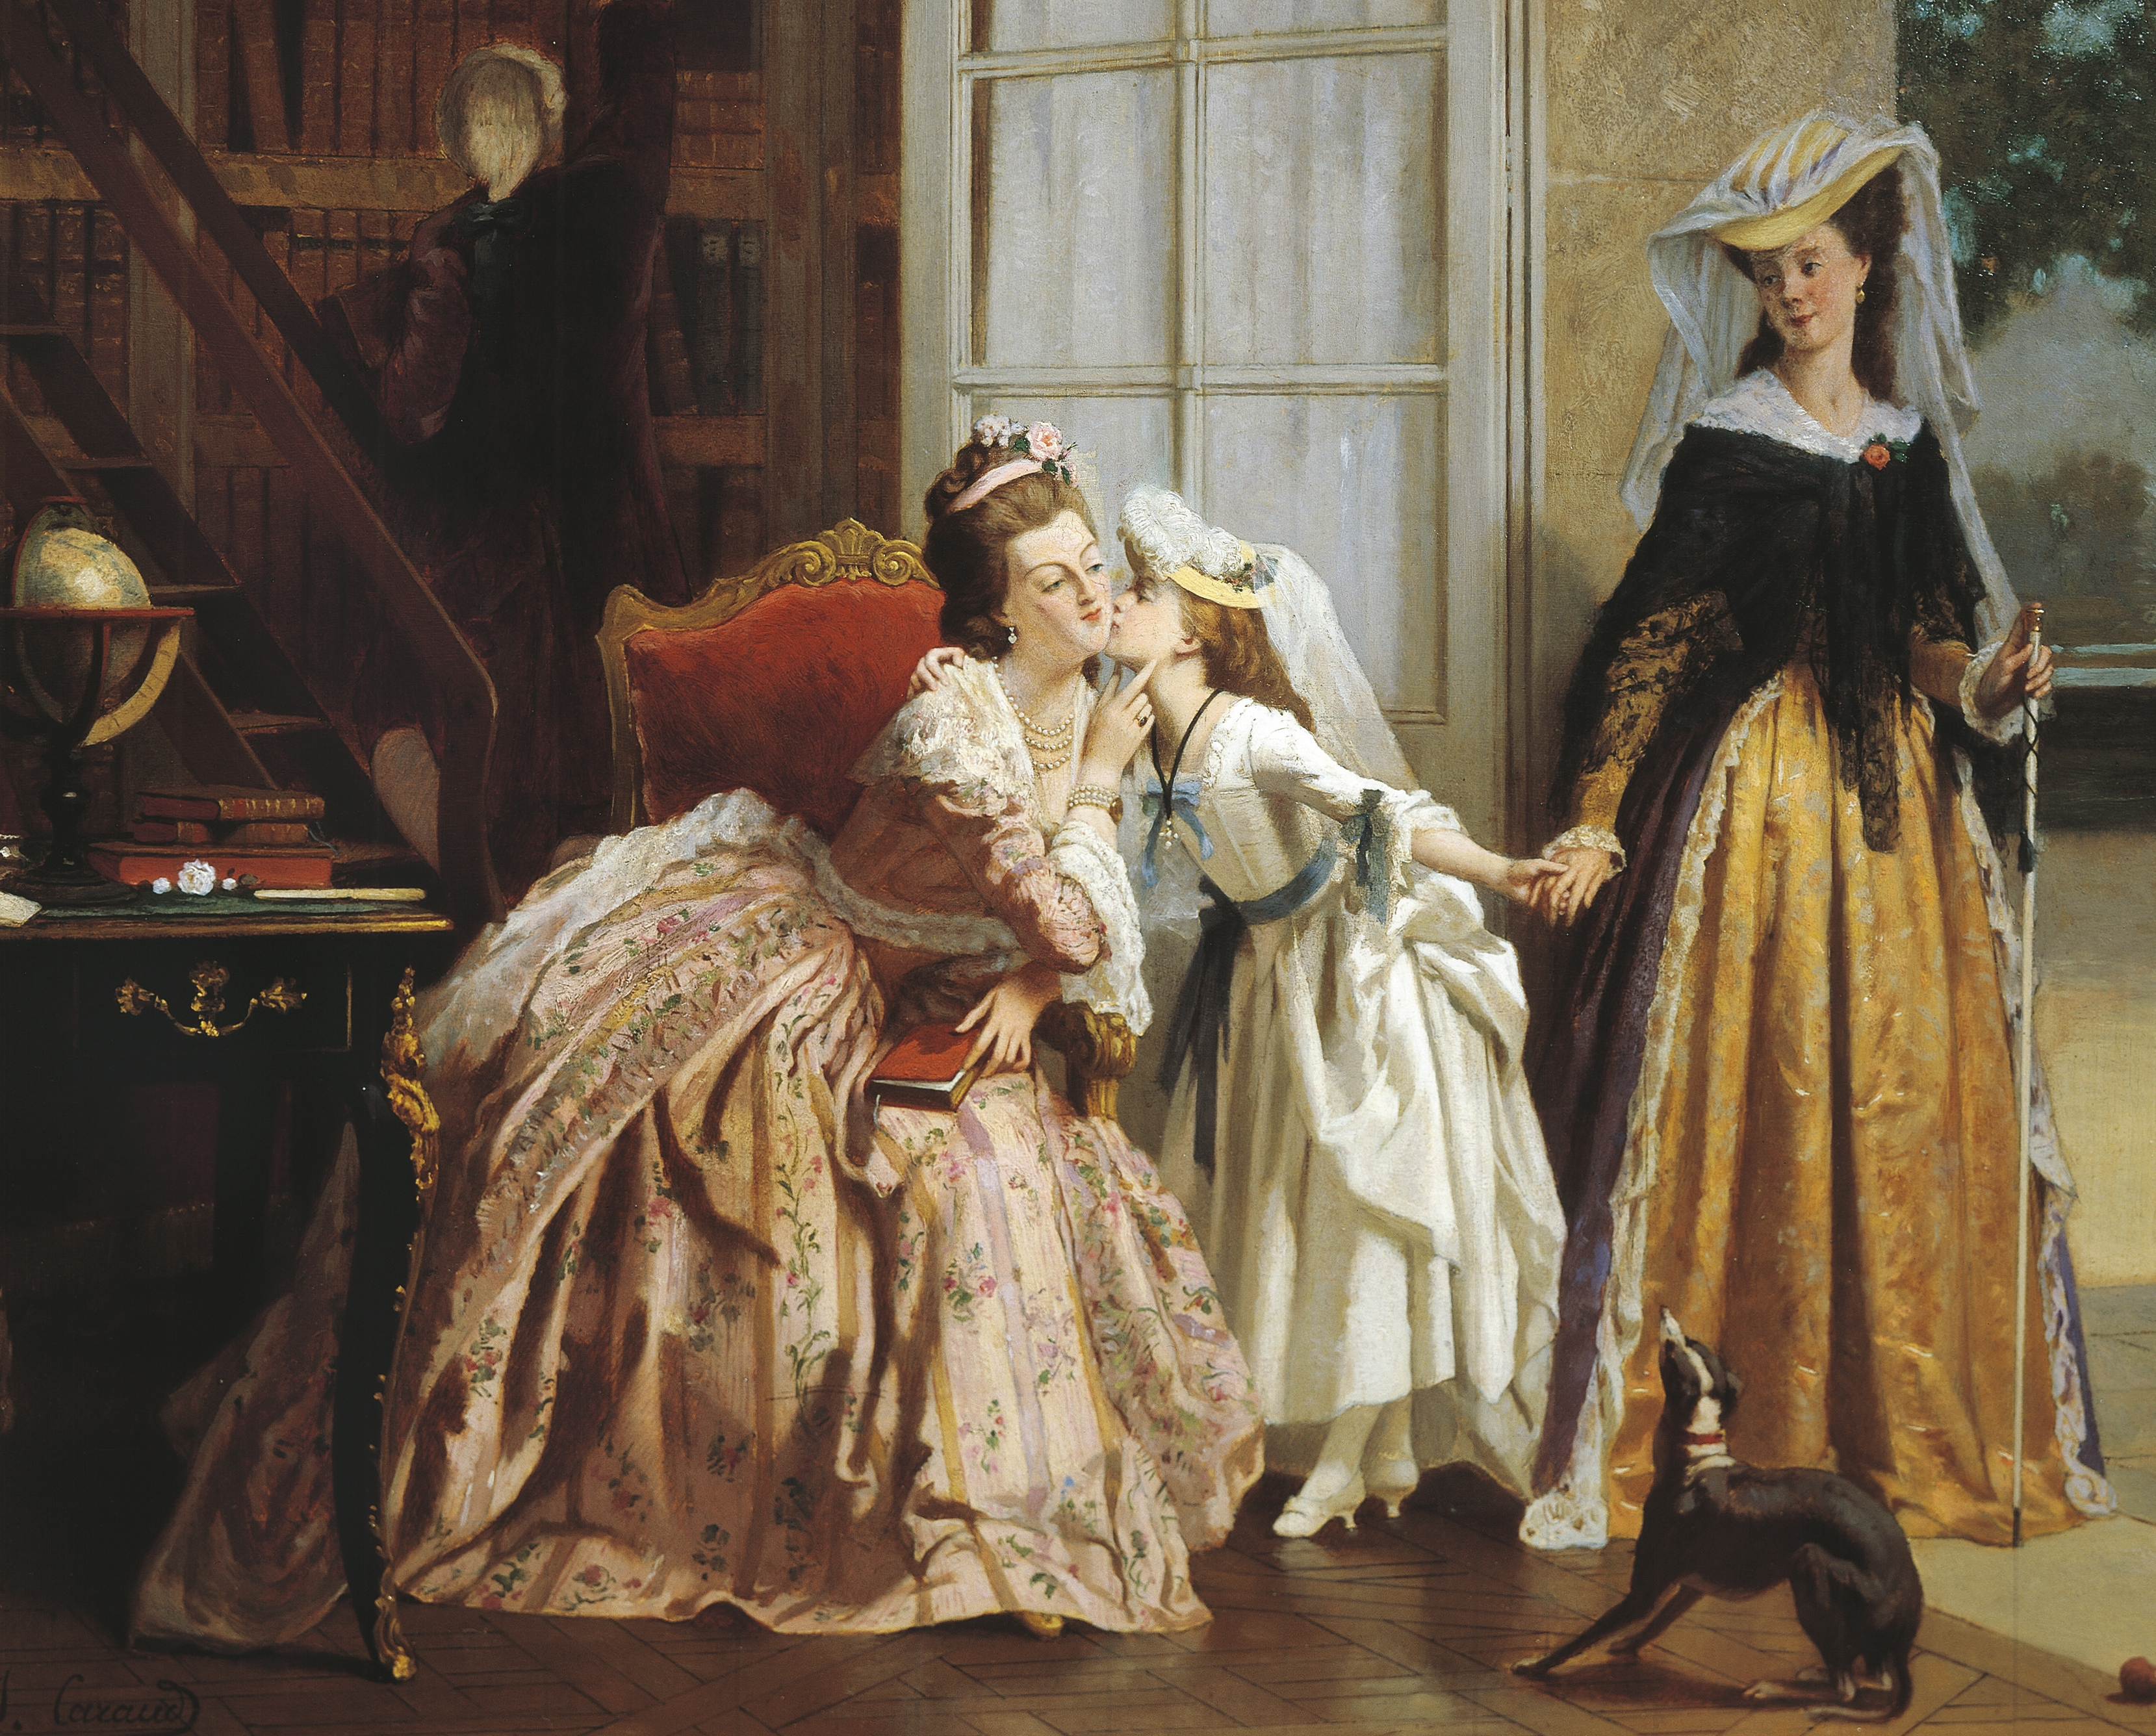 Marie Antoinette and her daughter, in a painting by Joseph Caraud.